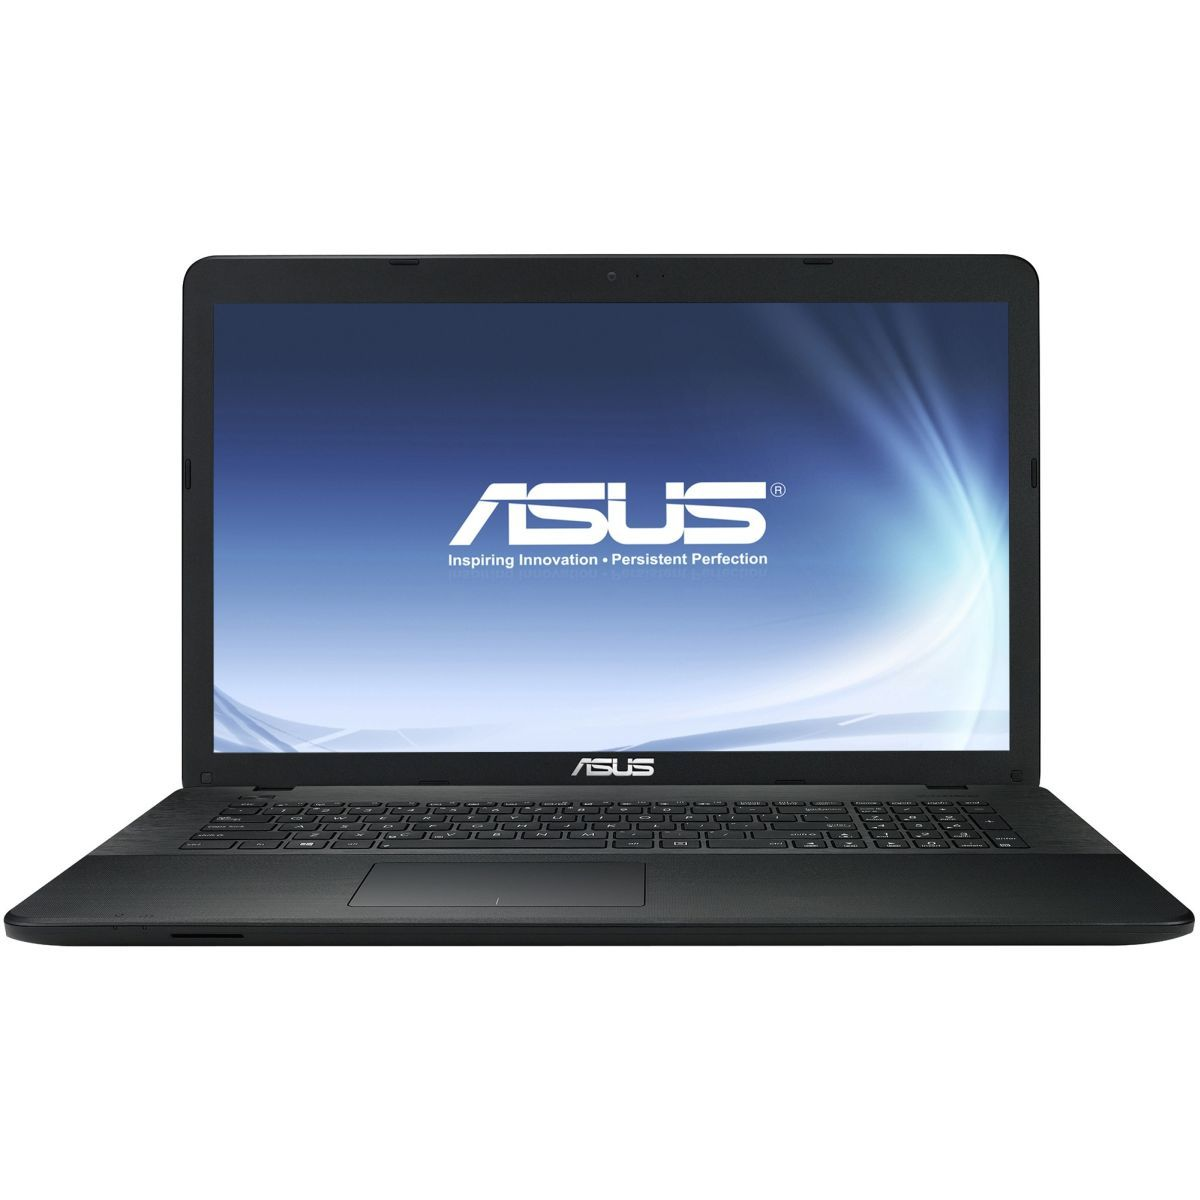 ASUS N53JN NOTEBOOK BLUETOOTH DRIVERS PC